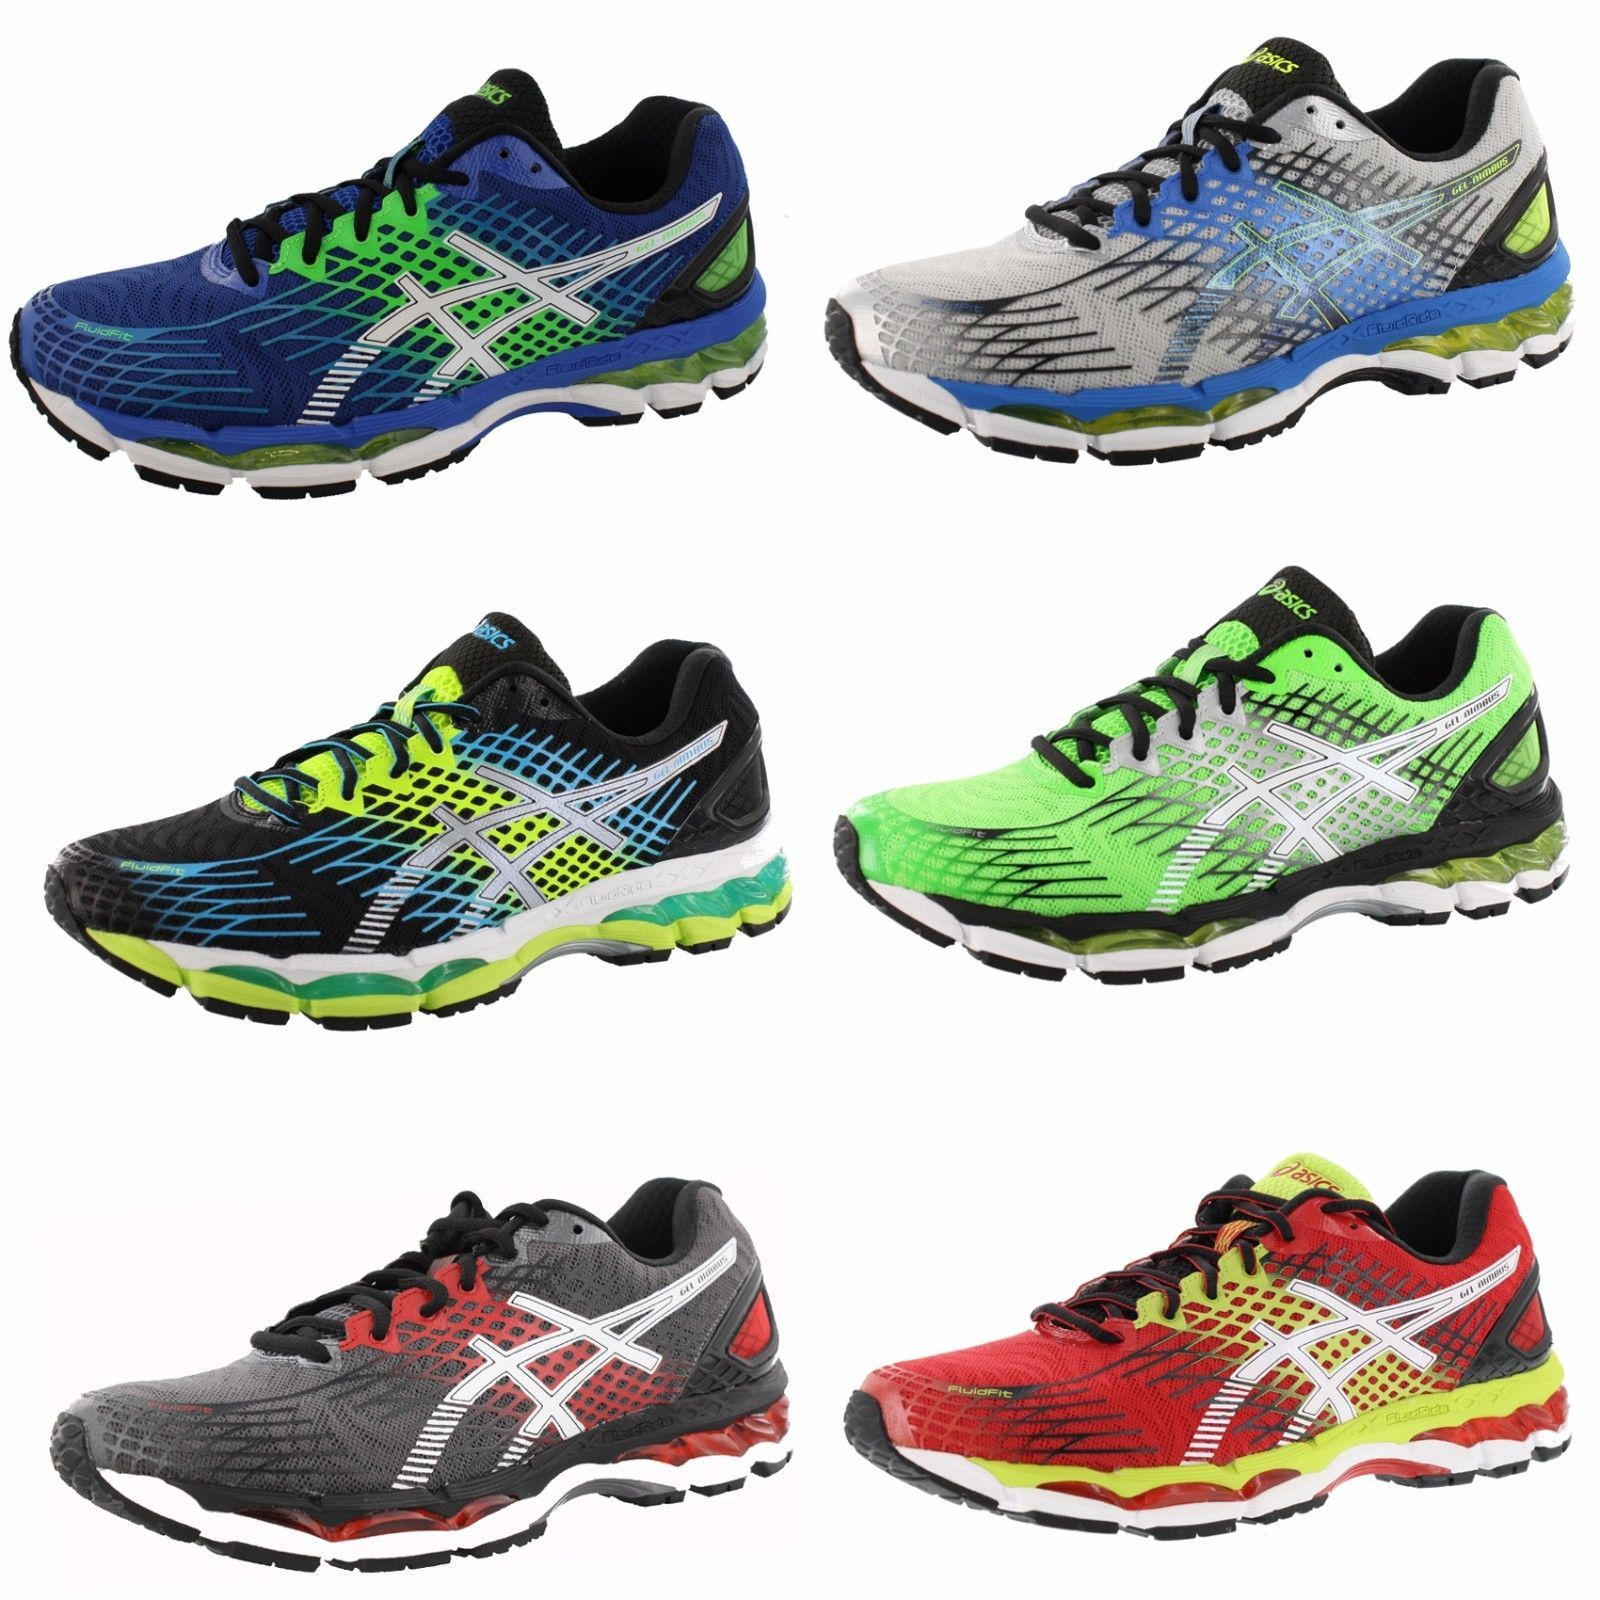 finest selection 21ec5 0fda8 Asics mens asics gel nimbus 17 t507n running shoes in 2018 ...